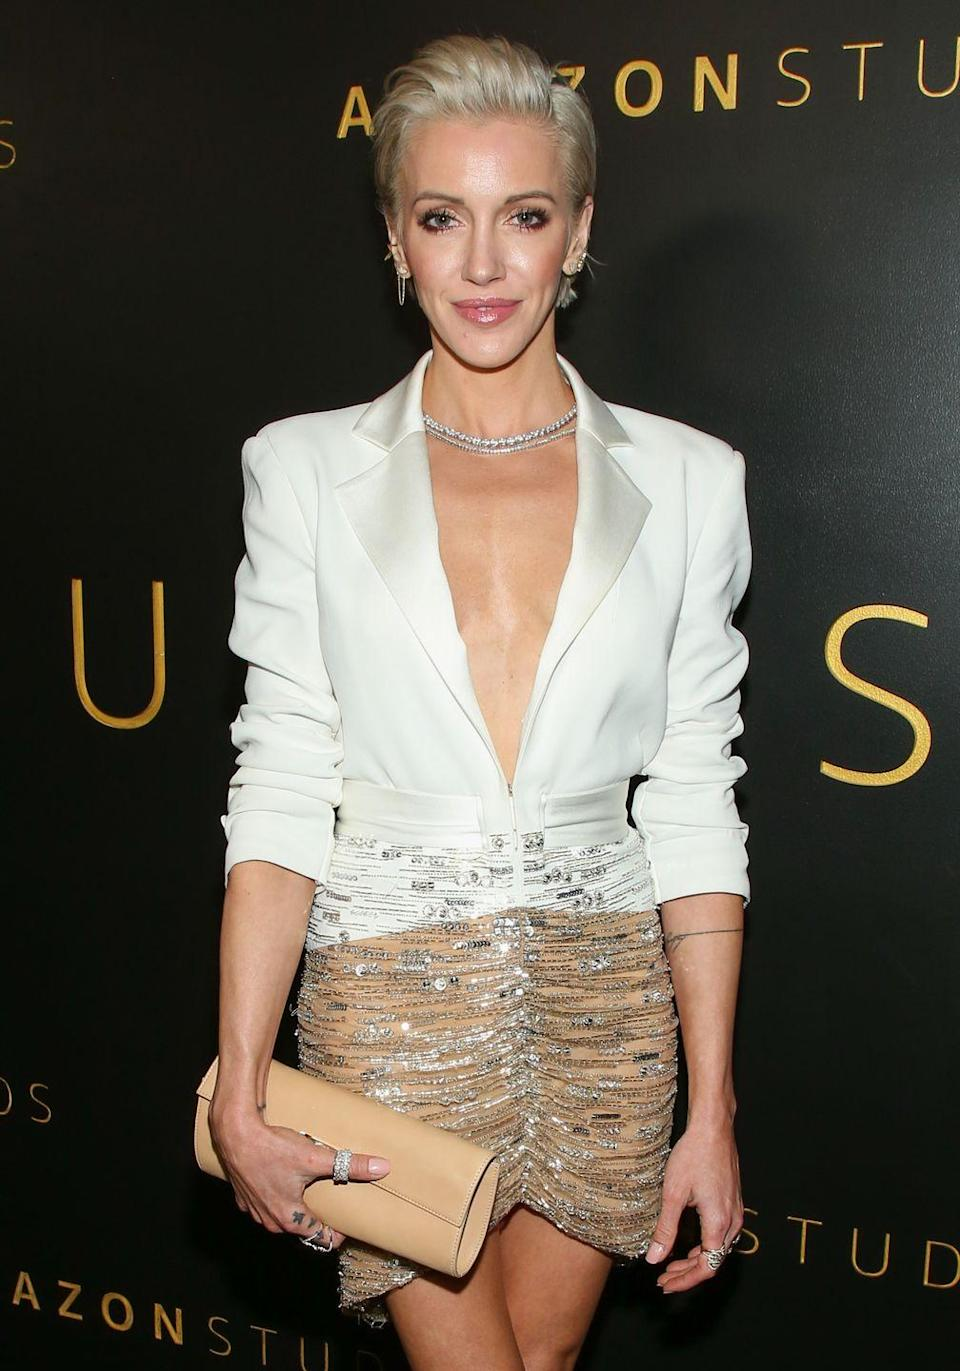 <p>These days, Katie stars as Laurel Lance in the television series <em>Arrow</em> and has reprised that role in other DC Comics offerings like <em>The Flash </em>and <em>DC's Legends of Tomorrow. </em>Transforming into all those roles makes her almost unrecognizable.</p>